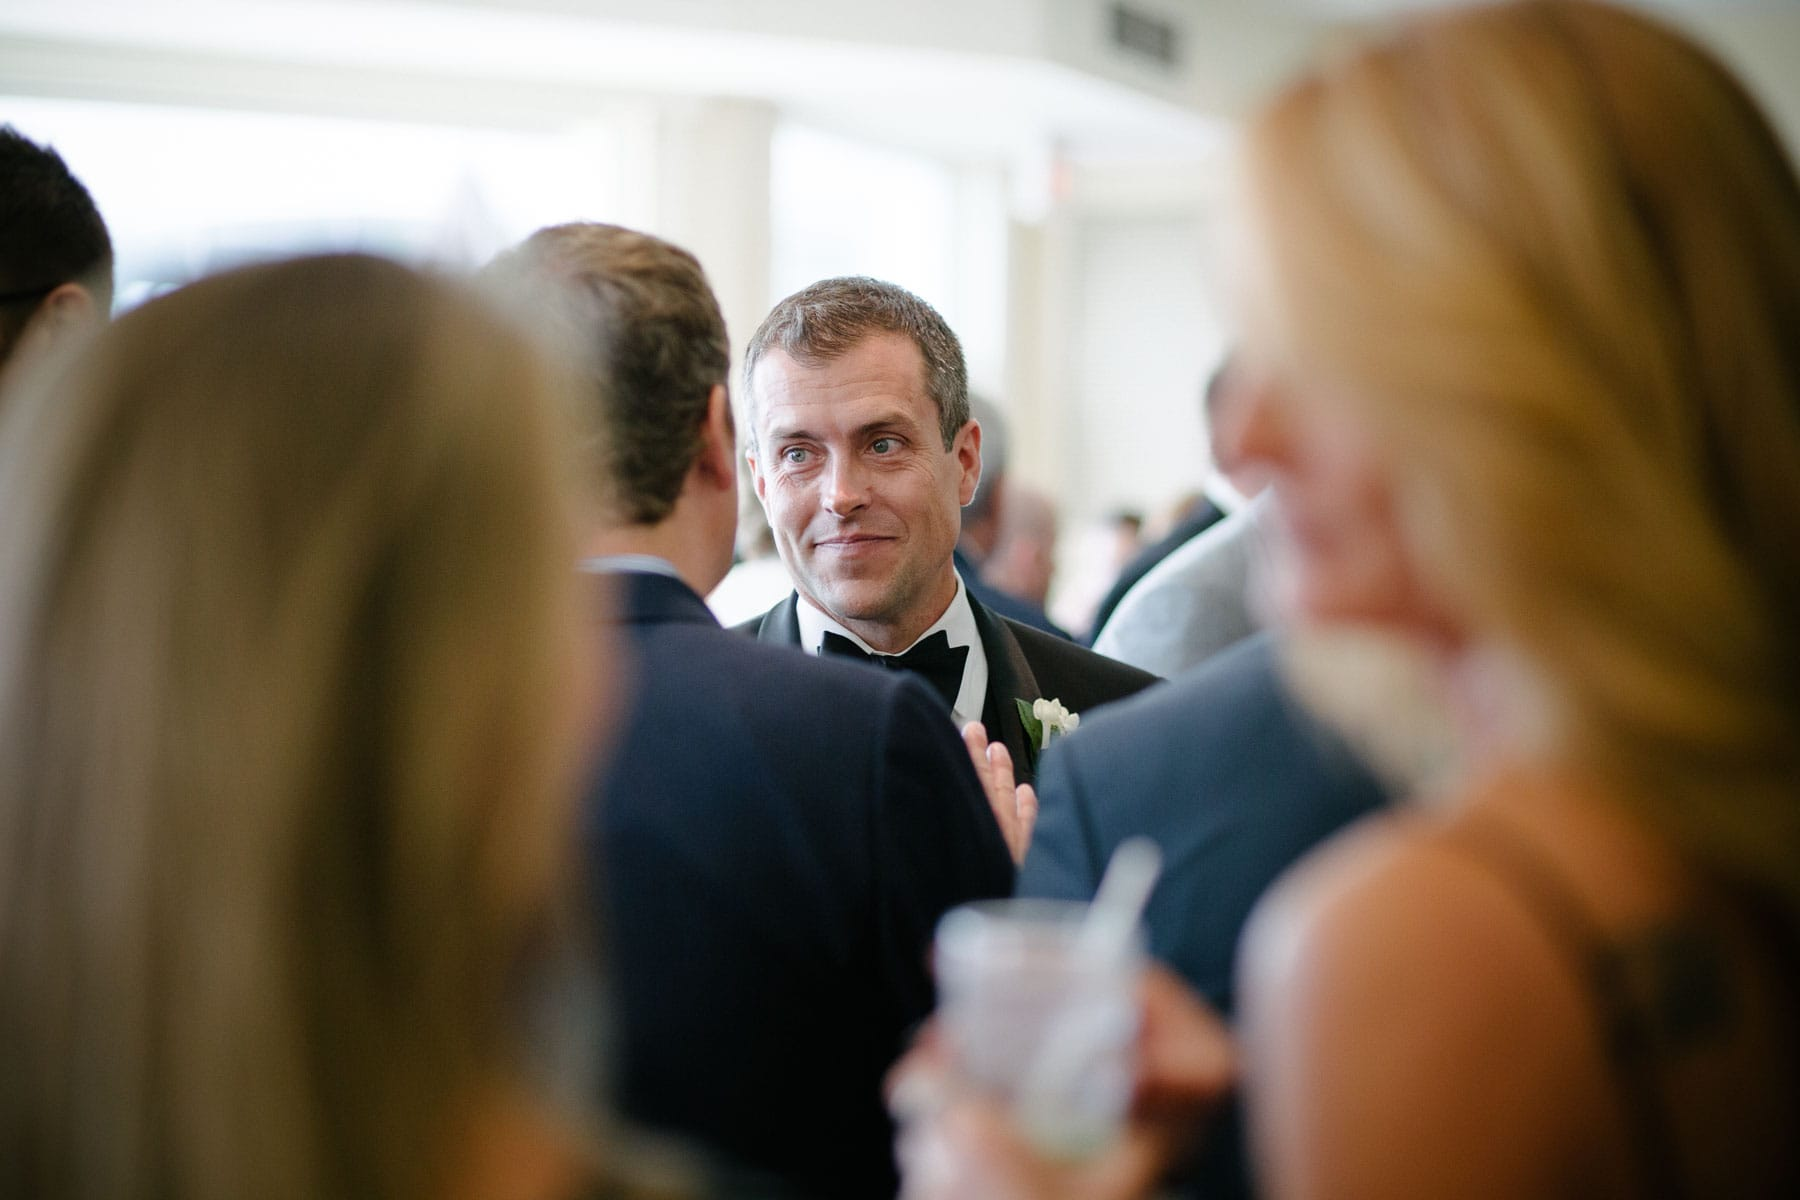 A portrait of the groom smiling at a man while surrounded by guests at this Boulevard Club wedding in Toronto.